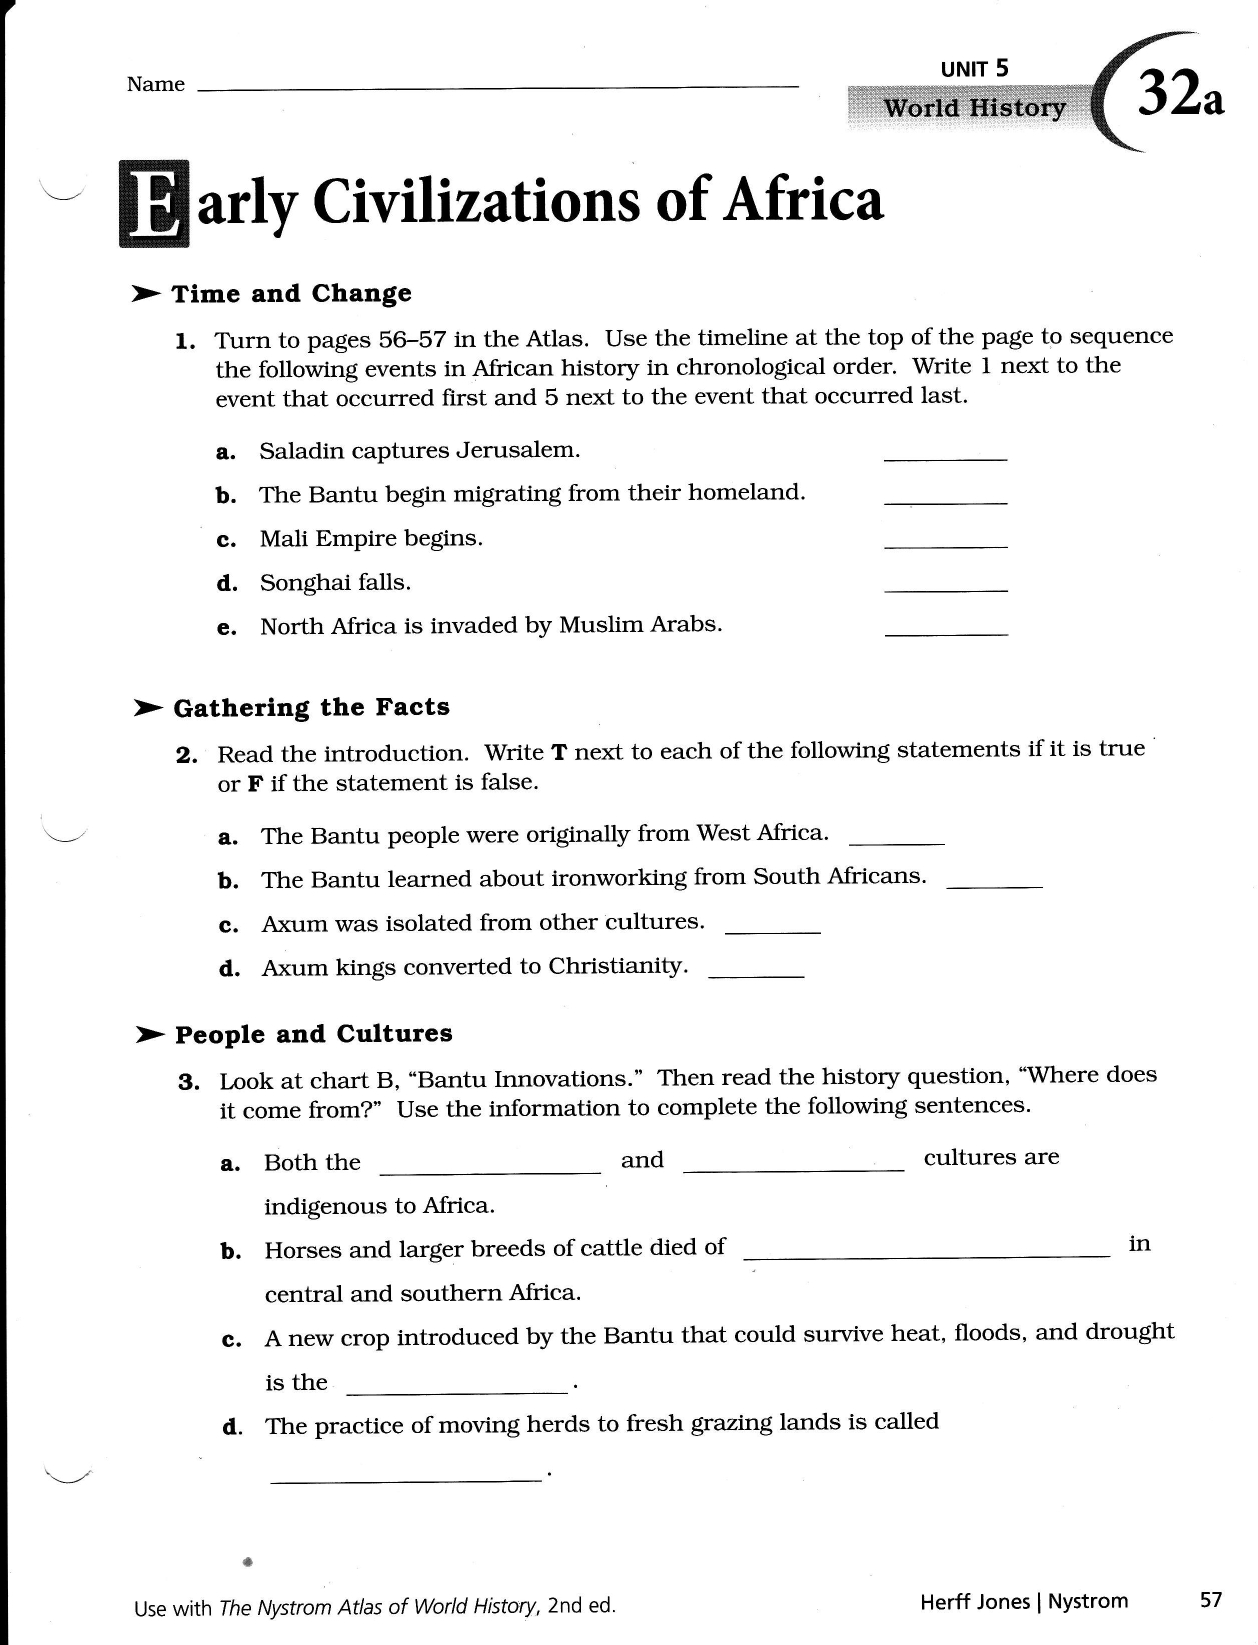 Nystrom Atlas Of World History Worksheets Answers